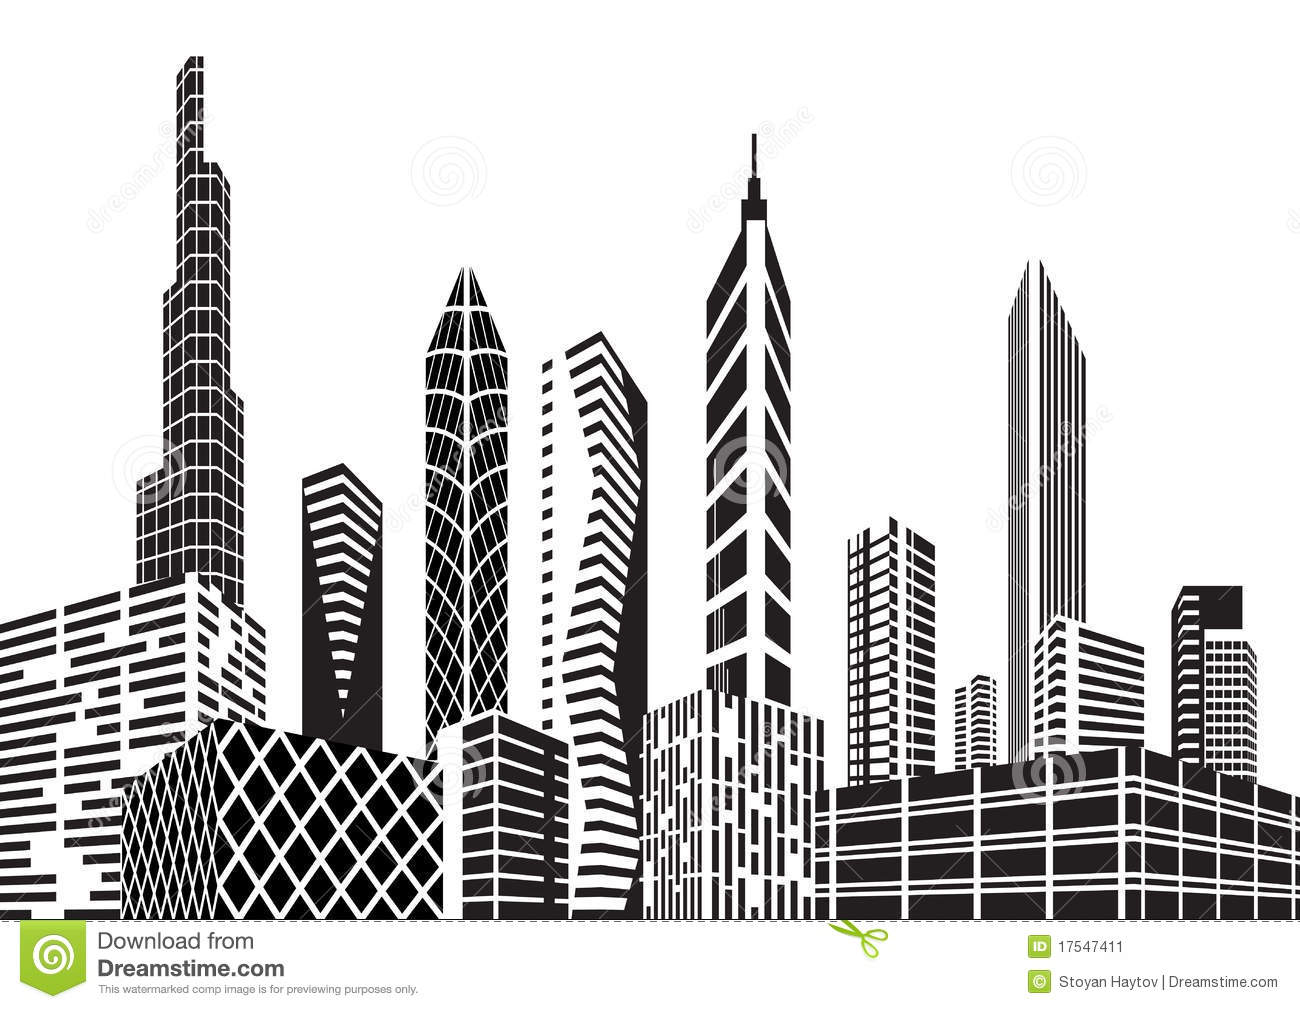 Building clipart black and white png svg transparent library Business building clipart black and white - ClipartFest svg transparent library